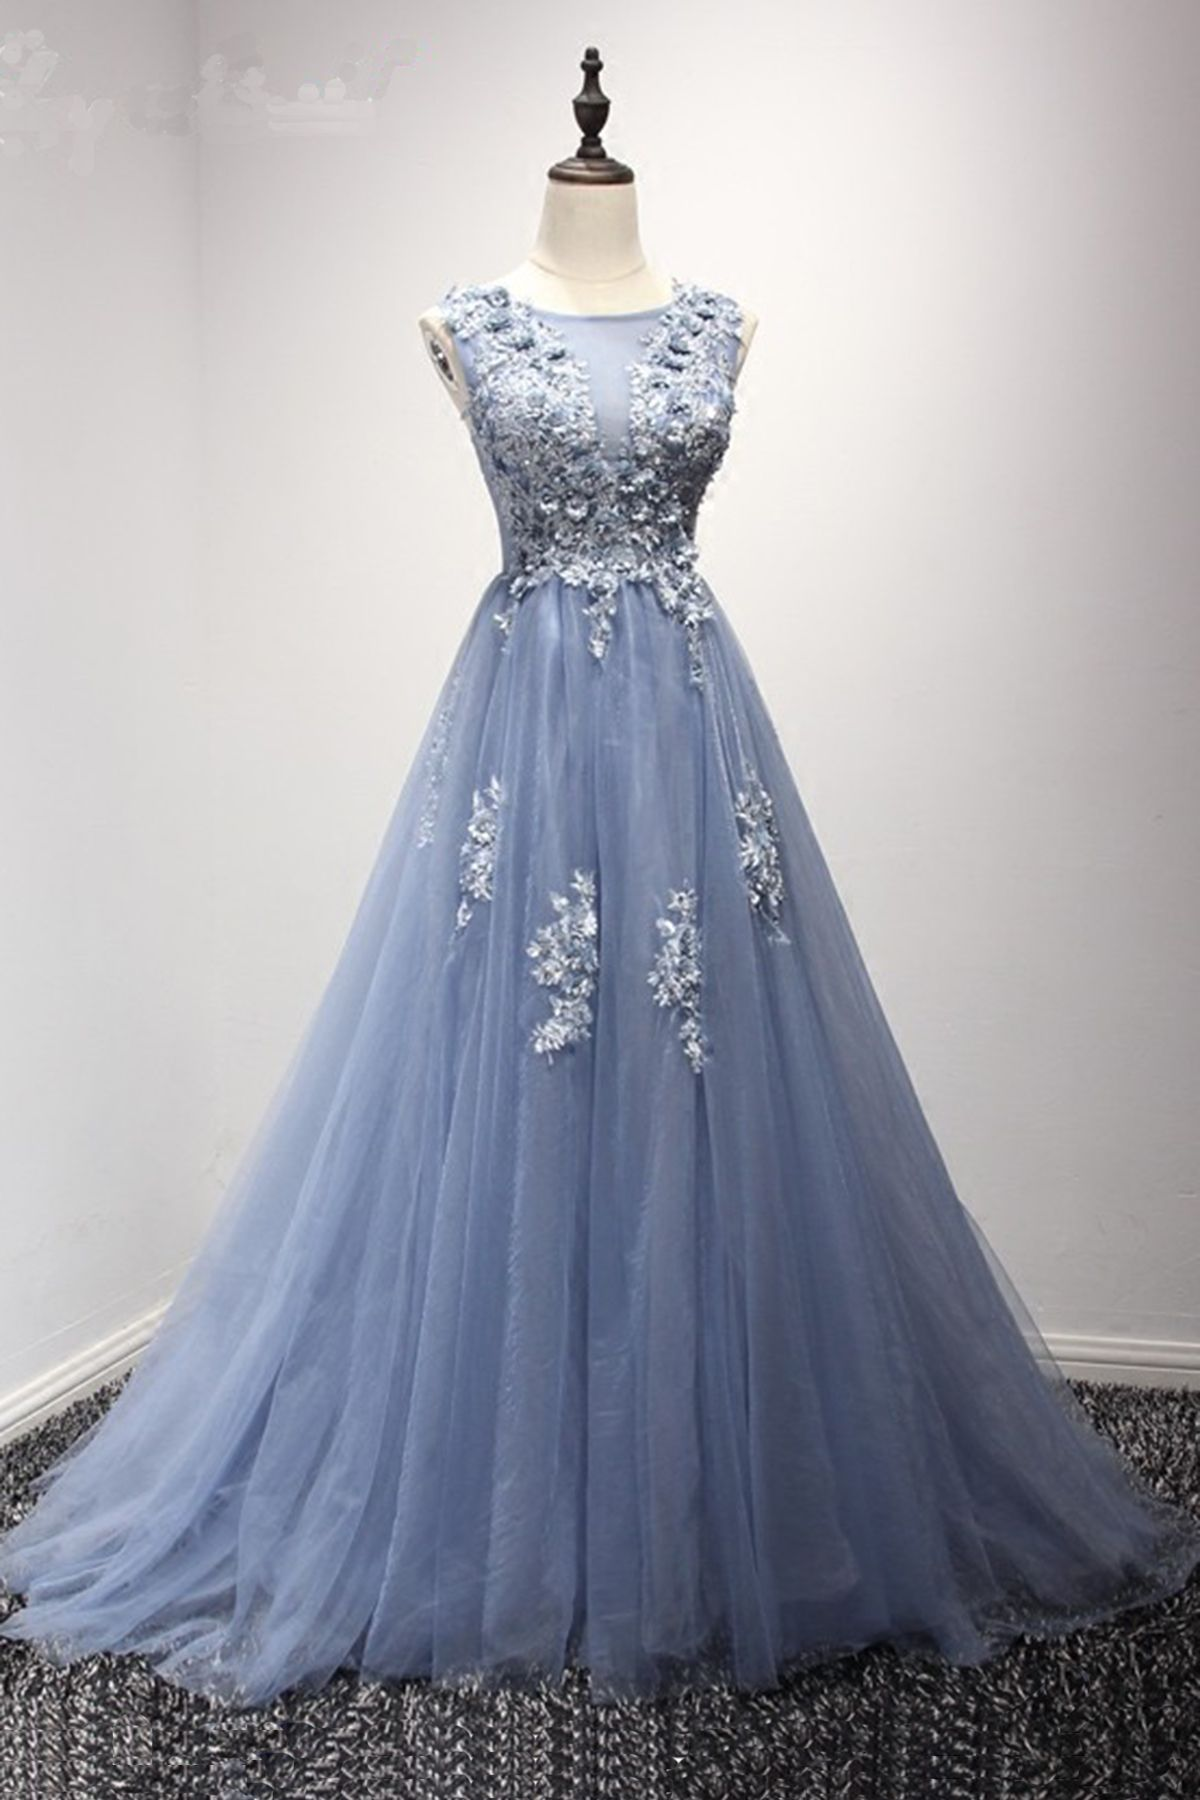 Blue tulle d flower long aline prom dress blue evening dress from